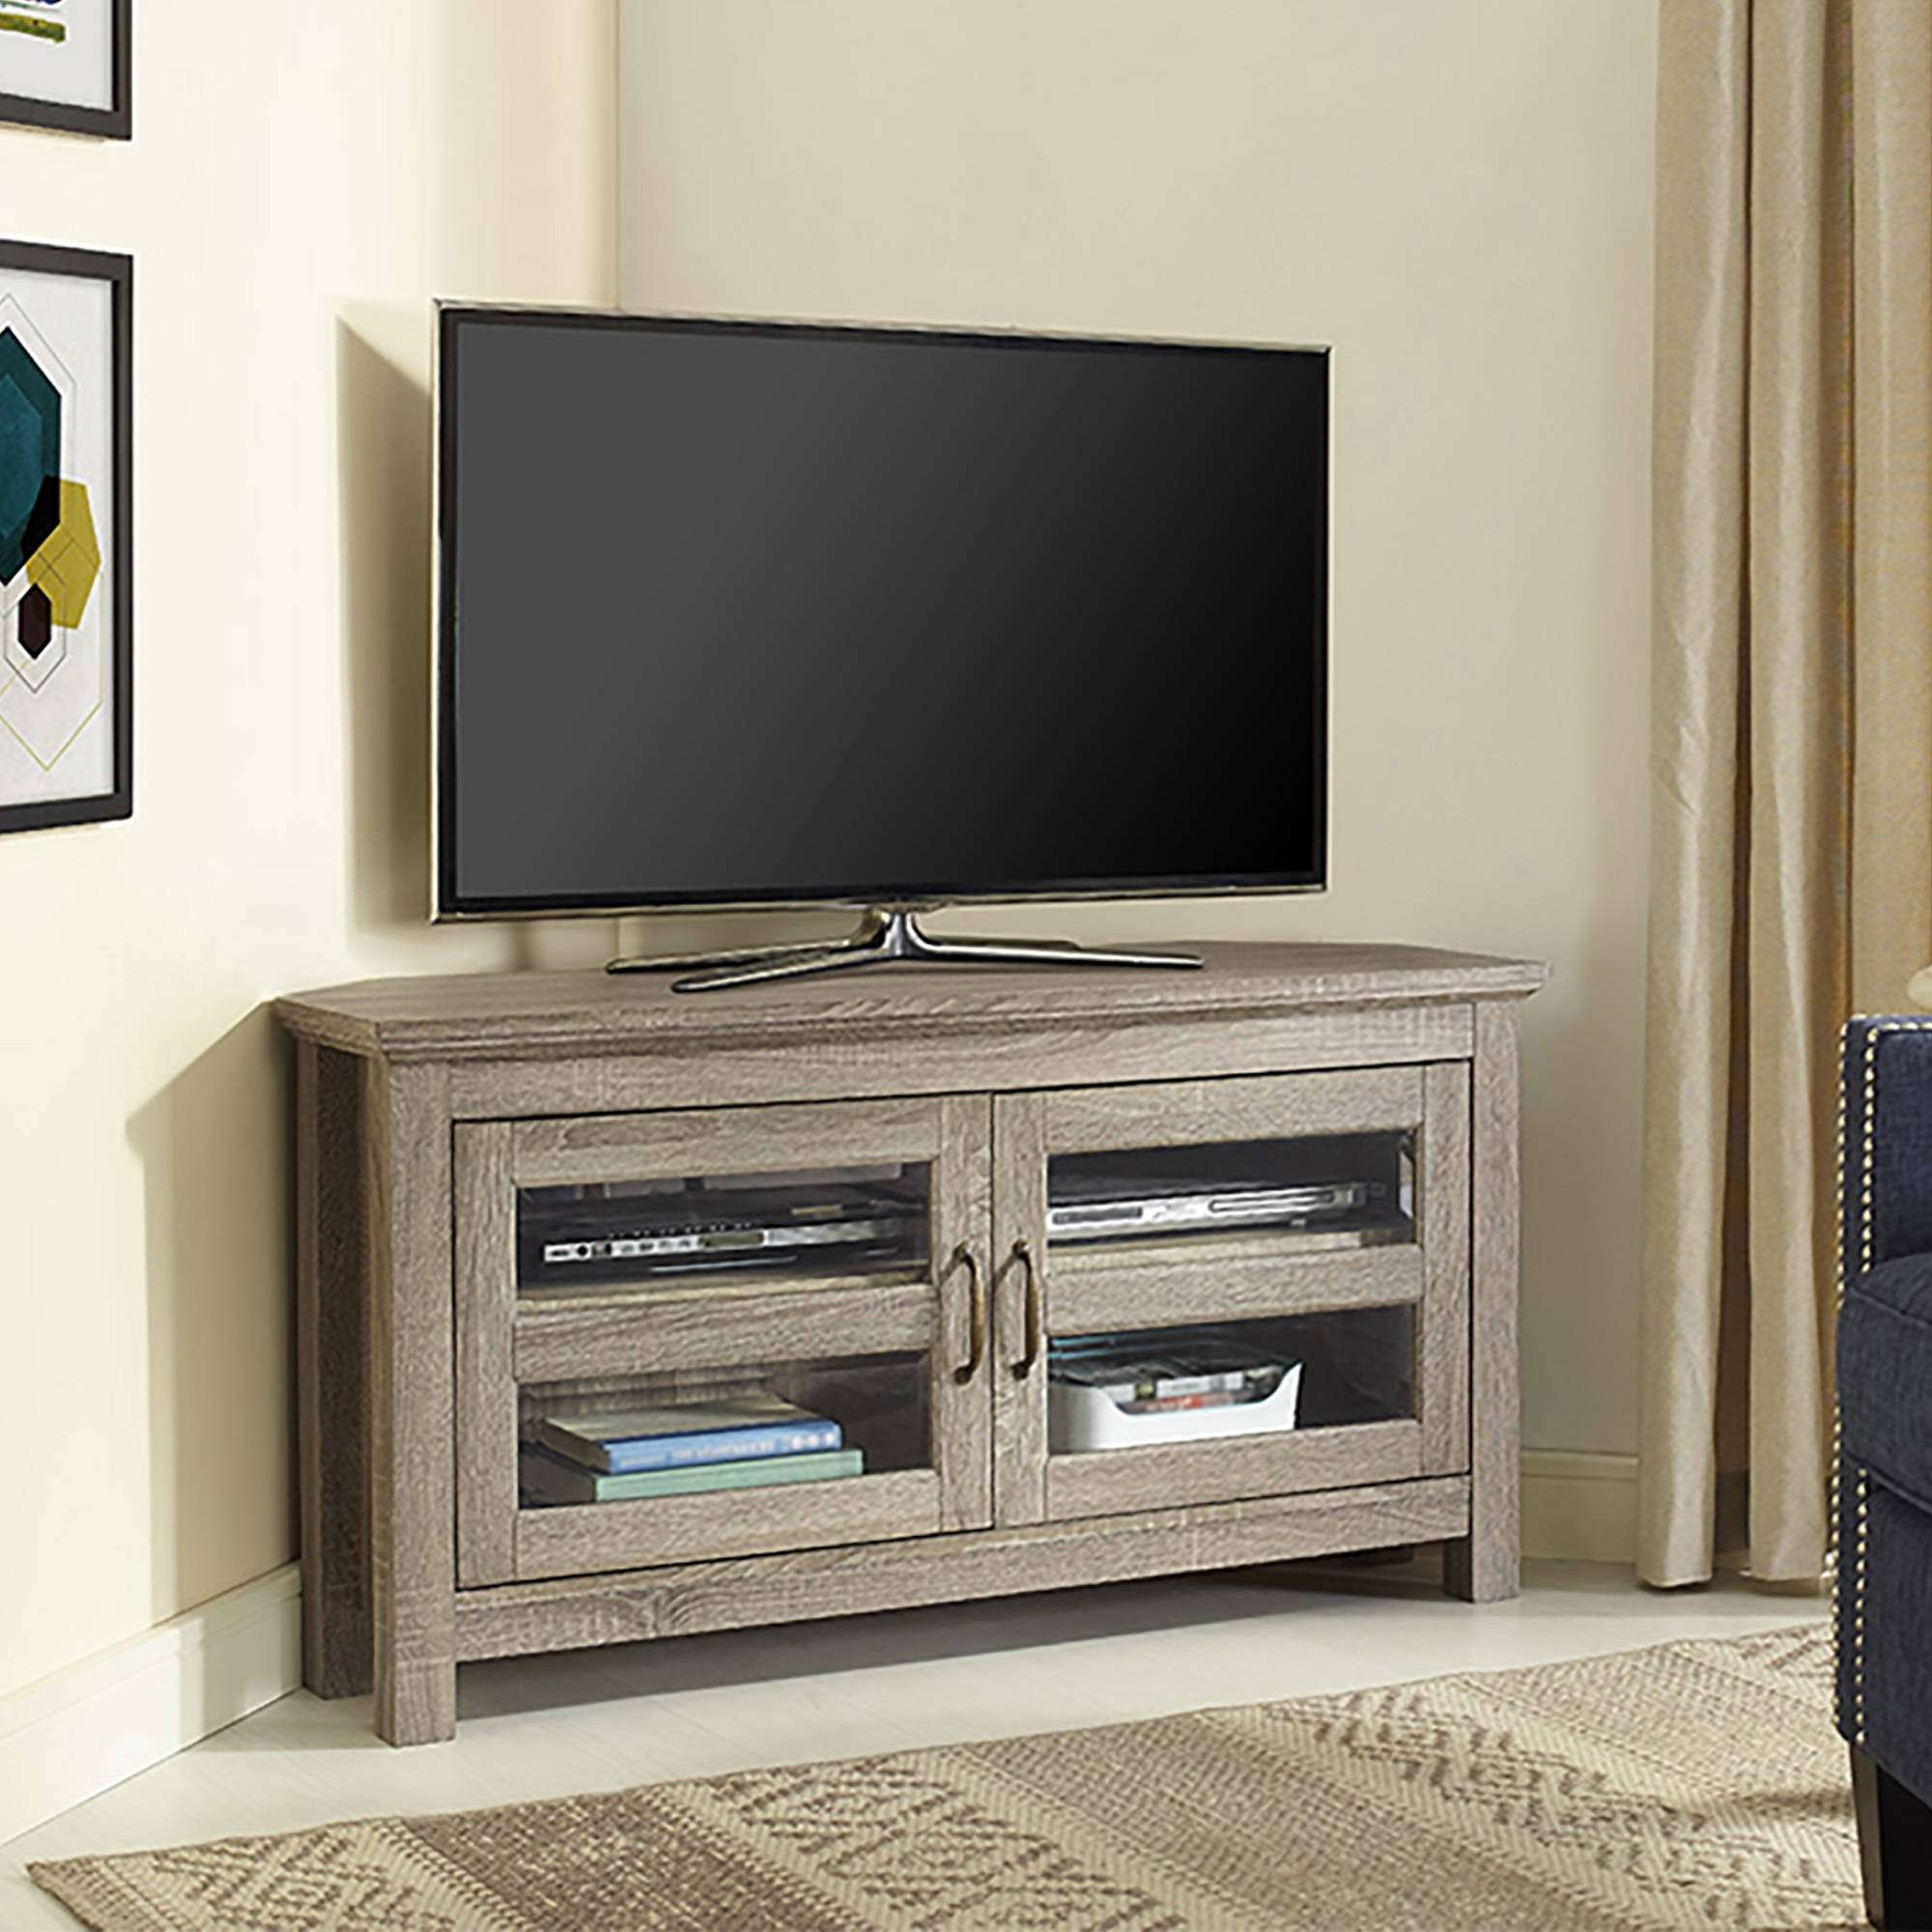 Tv : Shocking Corner Tv Stands 46 Inch Flat Screen Delightful Intended For Corner Tv Stands For 46 Inch Flat Screen (View 13 of 15)